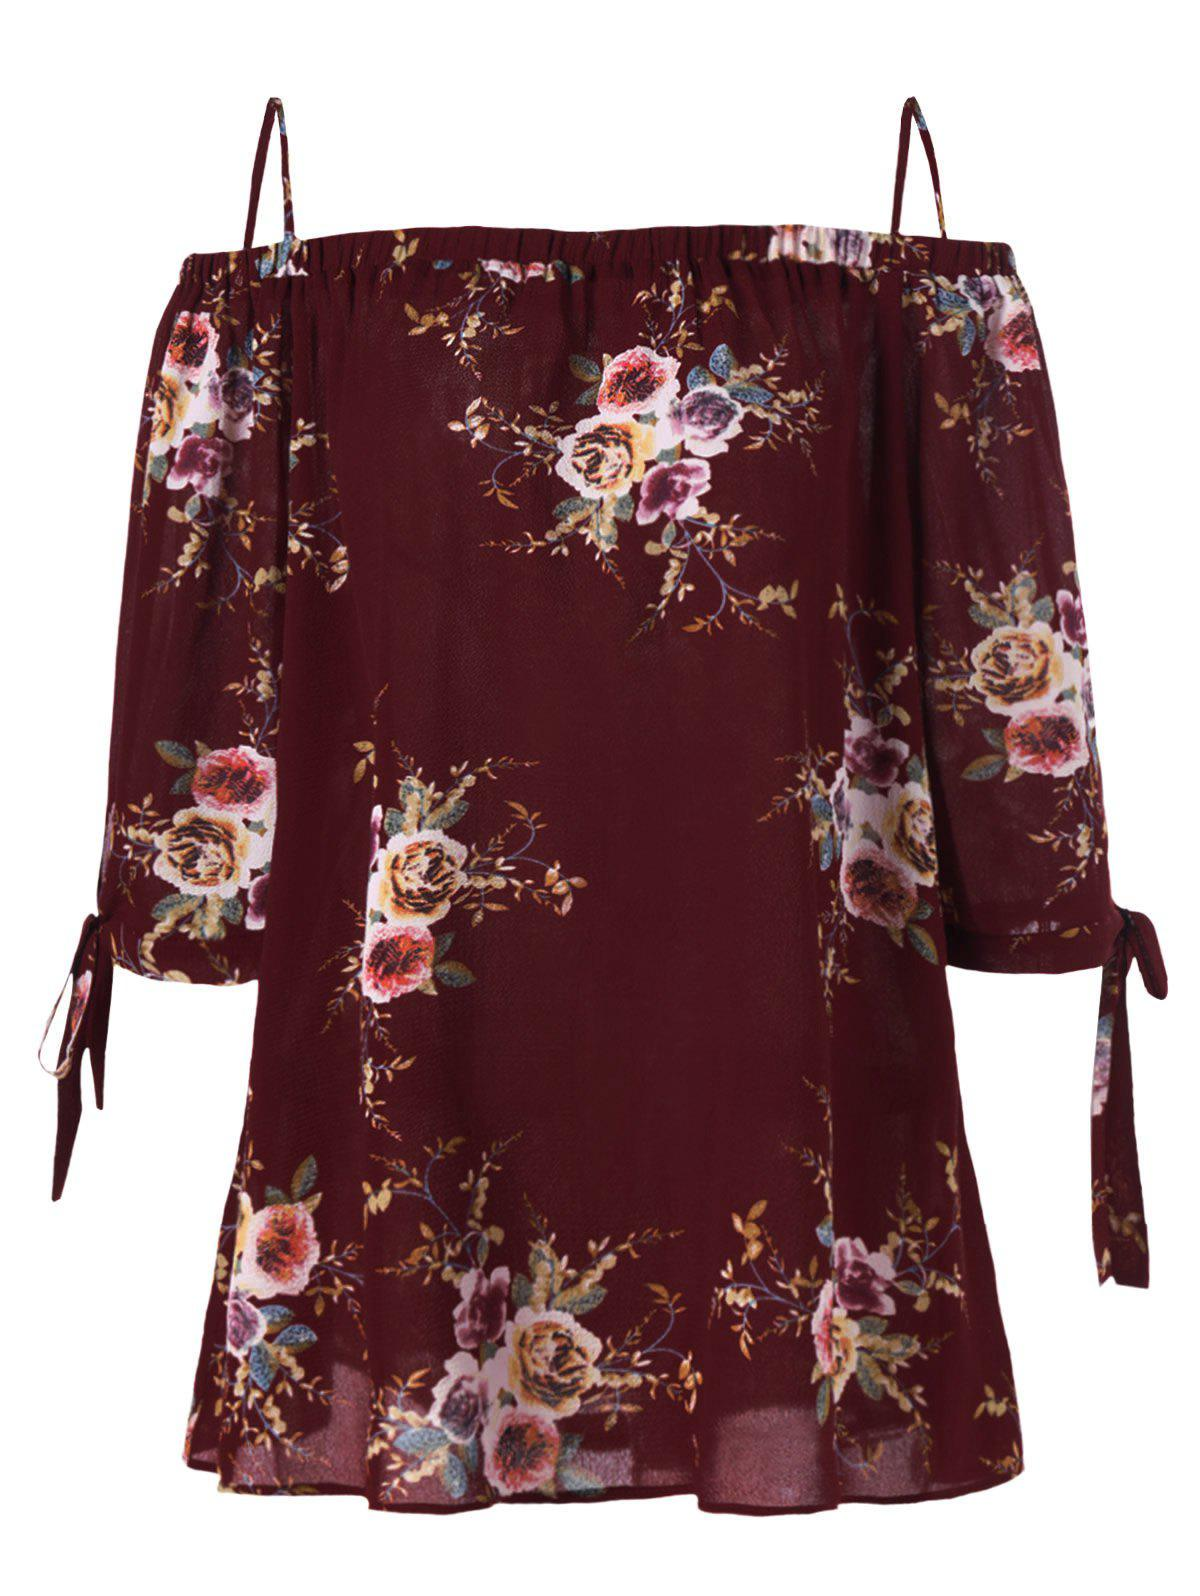 Plus Size Cold Shoulder Bohemian BlouseWOMEN<br><br>Size: XL; Color: WINE RED; Material: Polyester; Shirt Length: Regular; Sleeve Length: Three Quarter; Collar: Spaghetti Strap; Style: Fashion; Season: Fall,Spring,Summer; Pattern Type: Floral; Placement Print: No; Weight: 0.2100kg; Package Contents: 1 x Blouse;